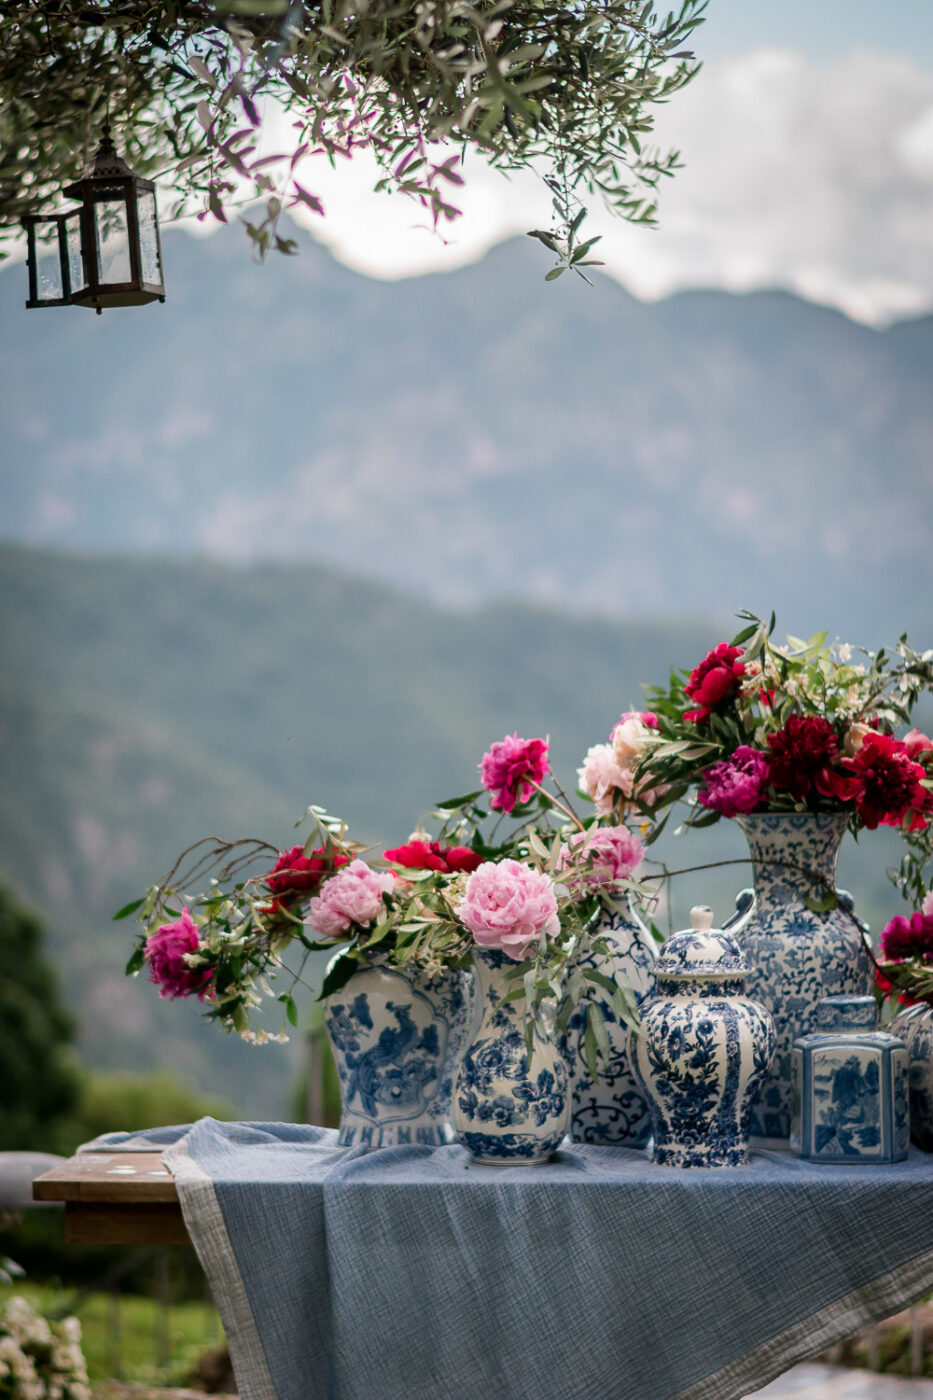 blue and white cloisonne vases filled with spectacular blossoms in pink and fuchsia with the Amalfi coast and hills in the distance at the Belmond Caruso Hotel in Ravello Amalfi Coast Italy planned by Barbara Babcock celebrations photo by luxury destination wedding photographer Francesco Bognin